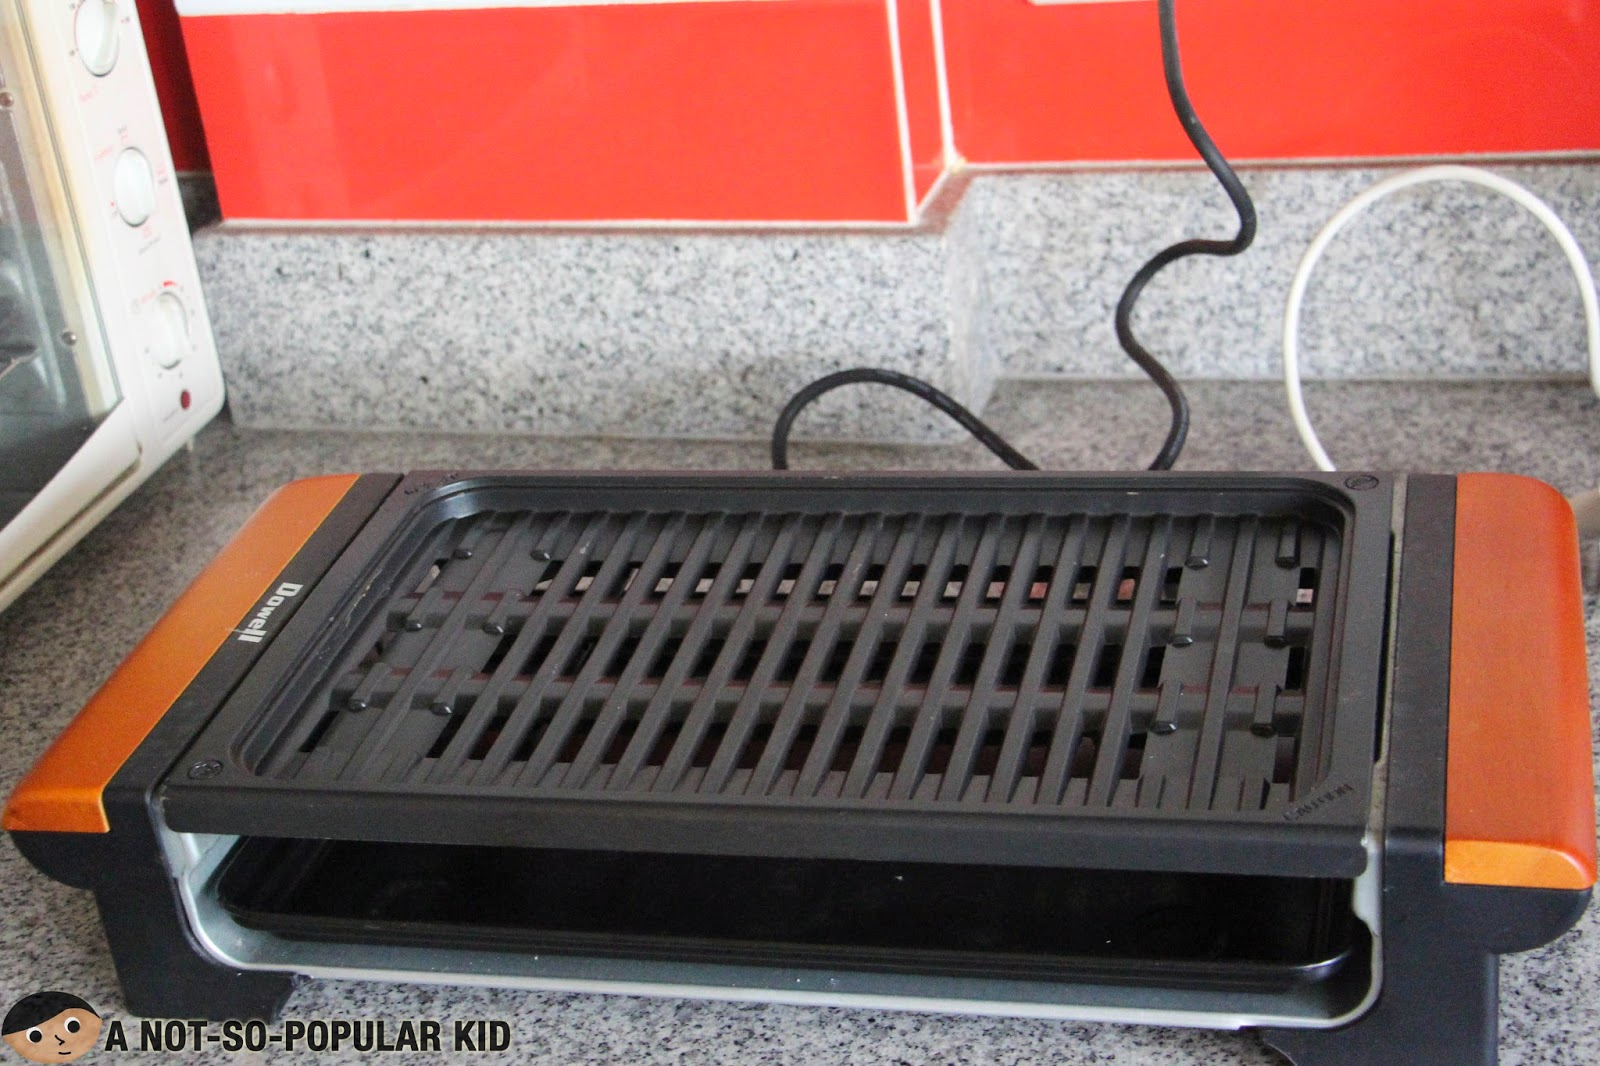 Electronic Indoor Grill for the Samgyeopsal